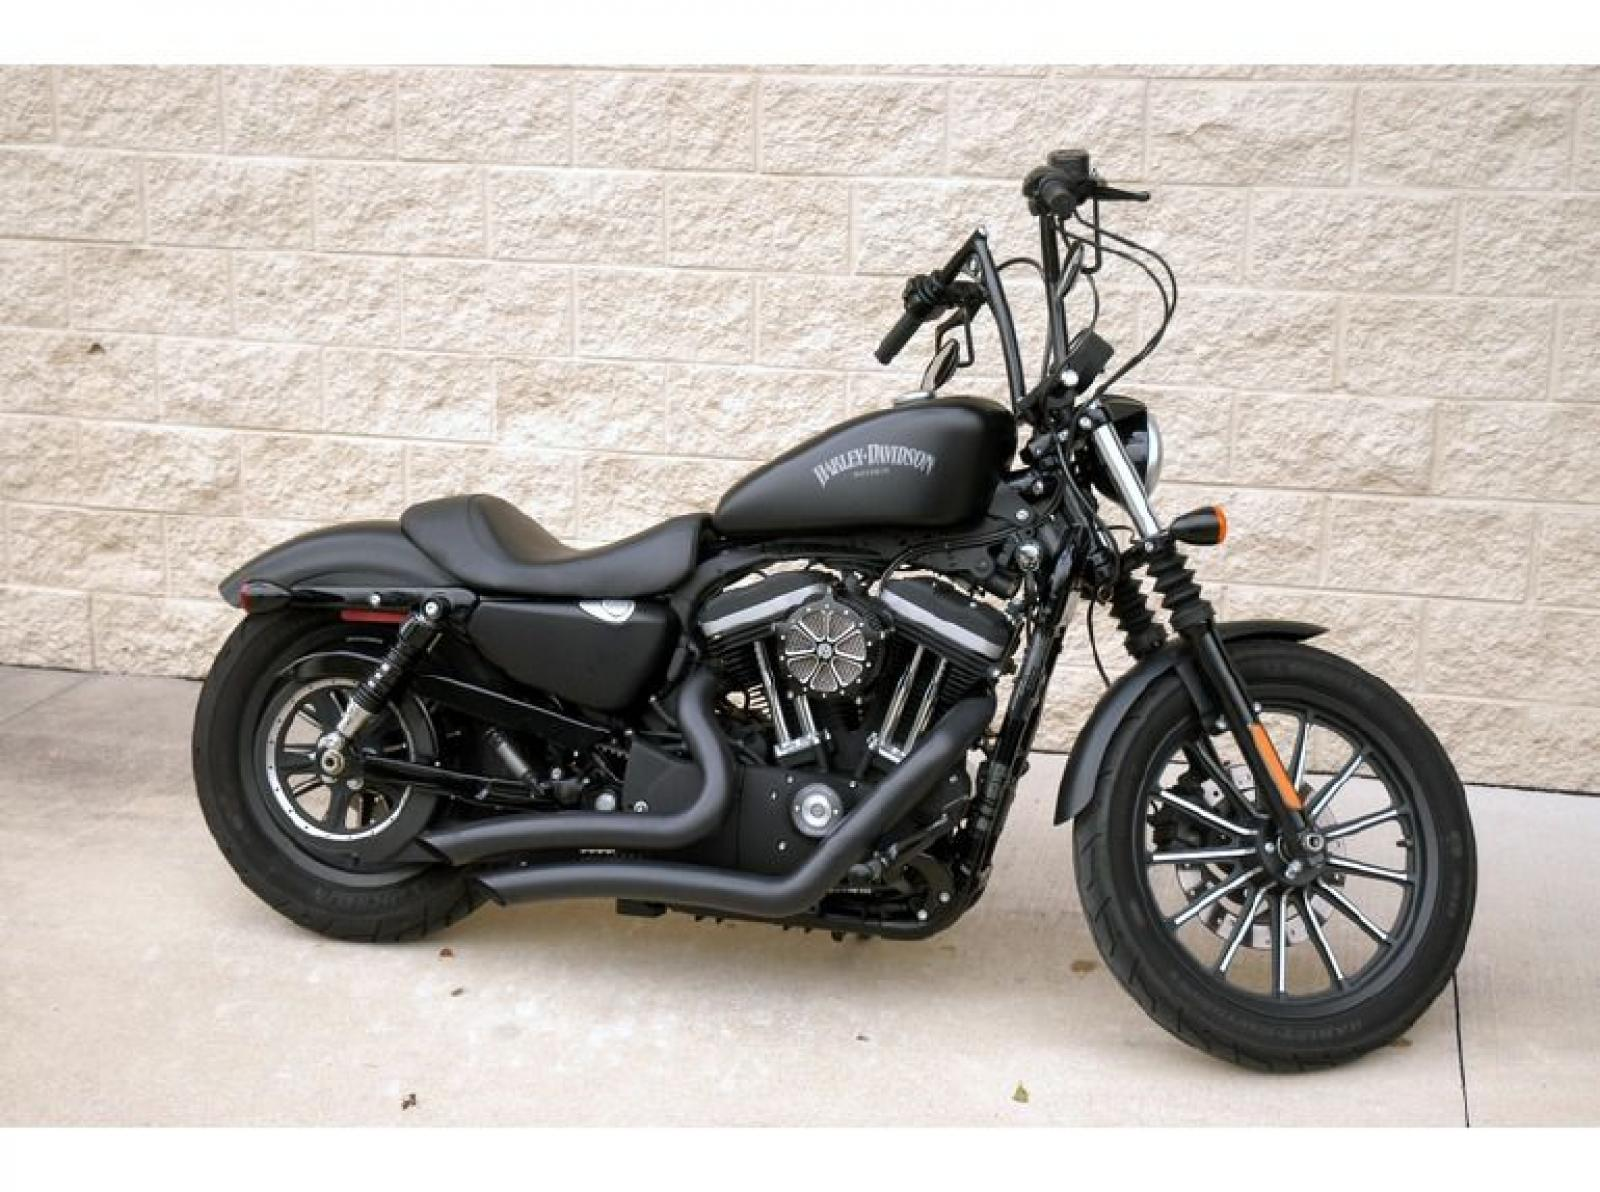 2012 harley davidson xl883n sportster iron 883 moto zombdrive com. Black Bedroom Furniture Sets. Home Design Ideas